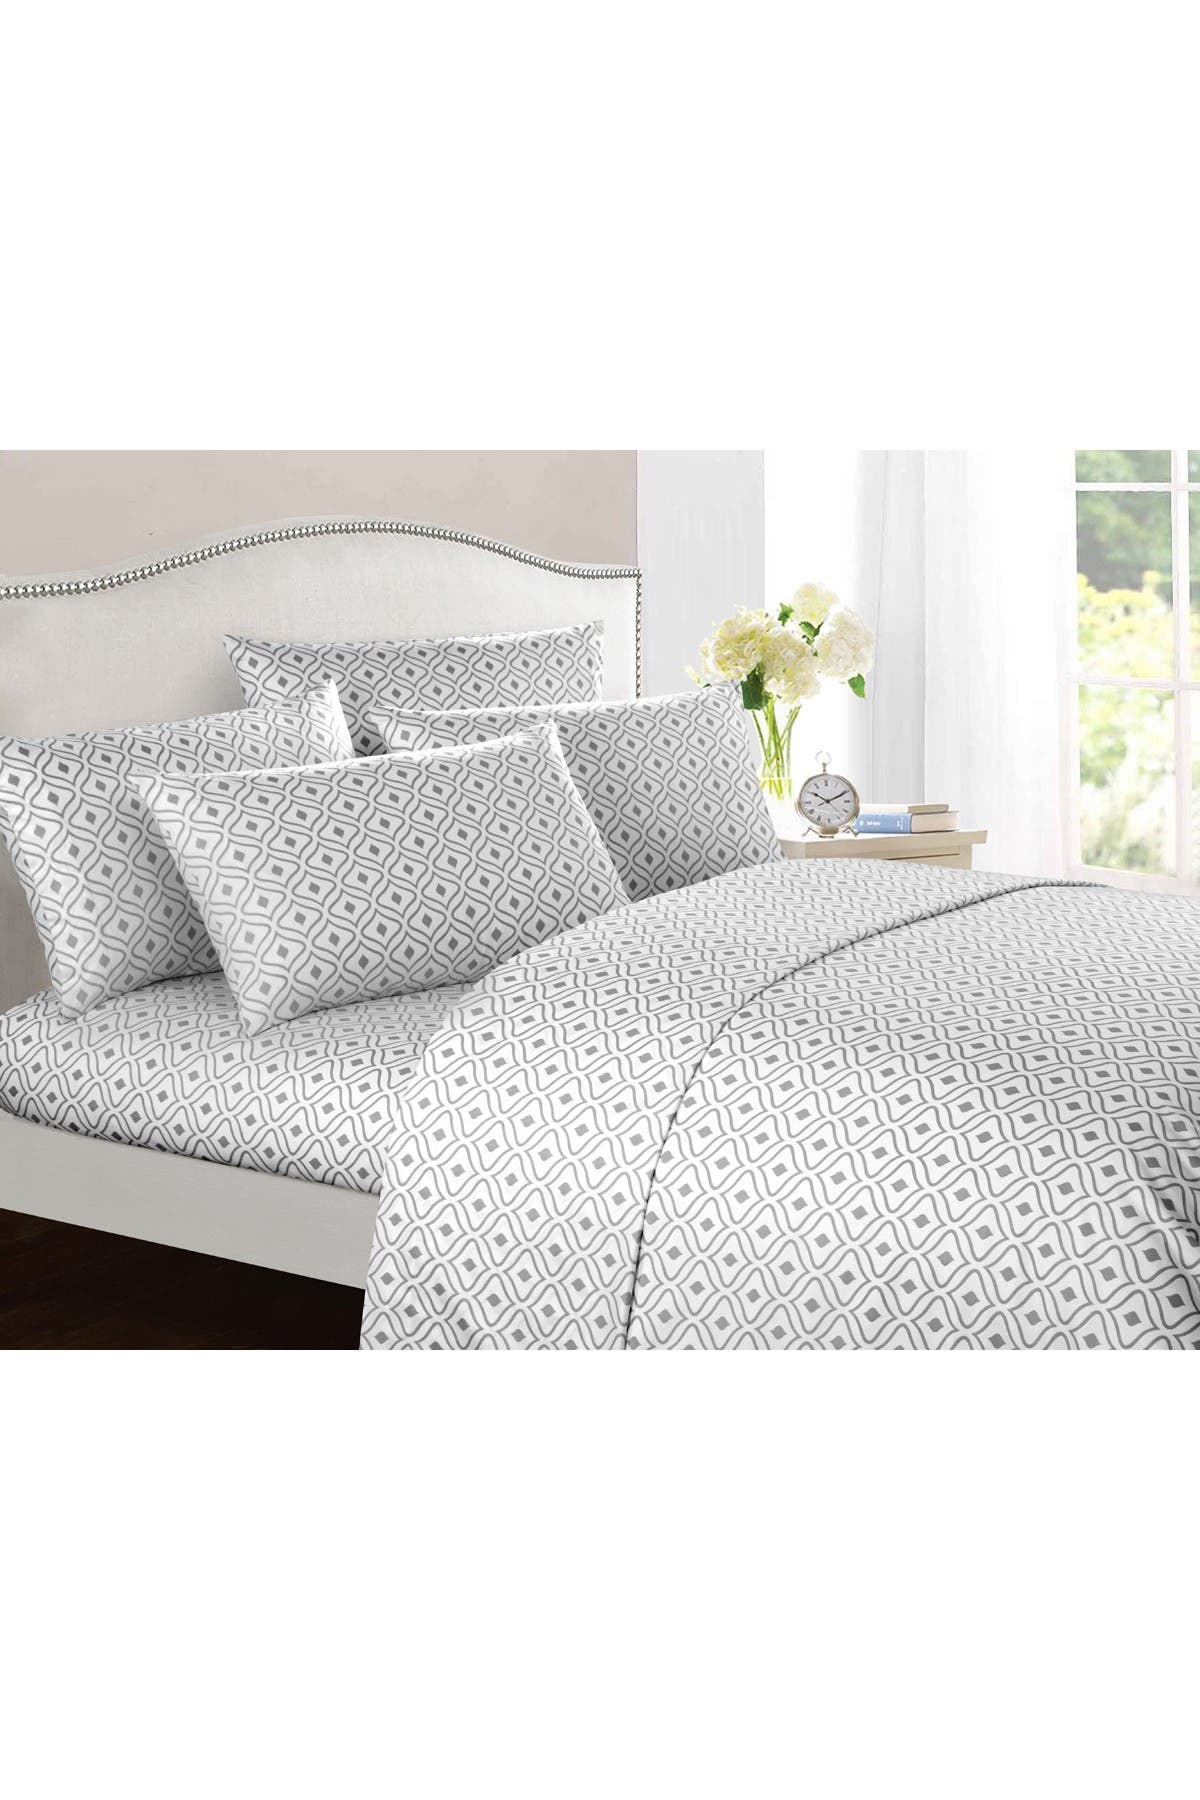 Image of Chic Home Bedding Grey Gazella Contemporary Geometric Diamond Queen 6-Piece Sheet Set